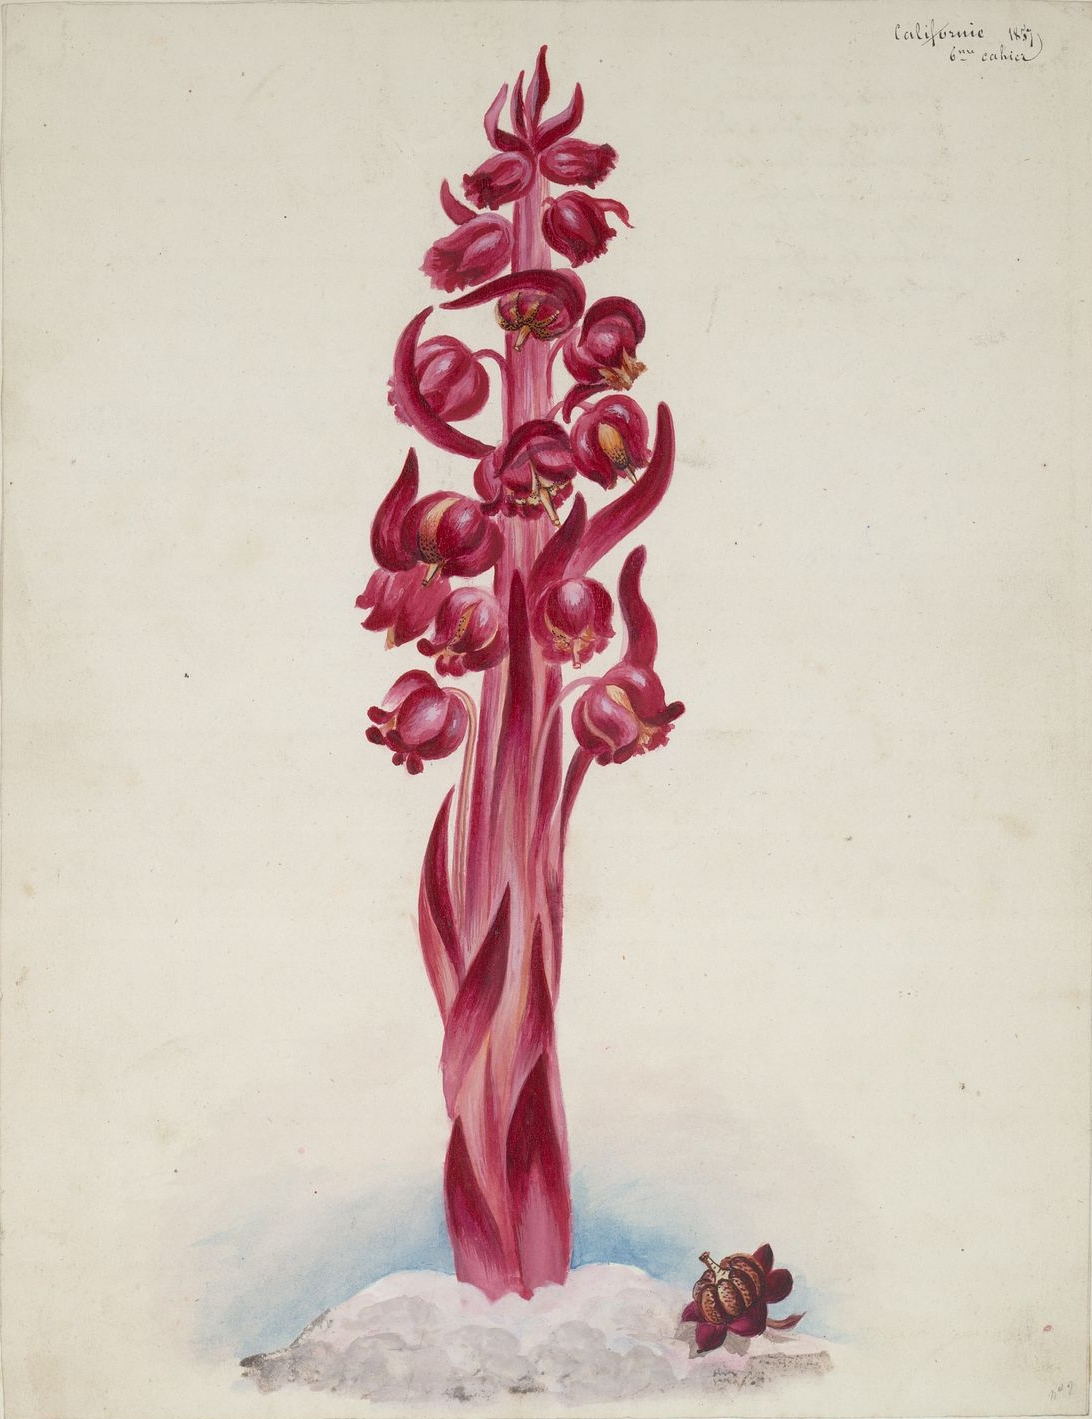 california snow flower, botanic illustration